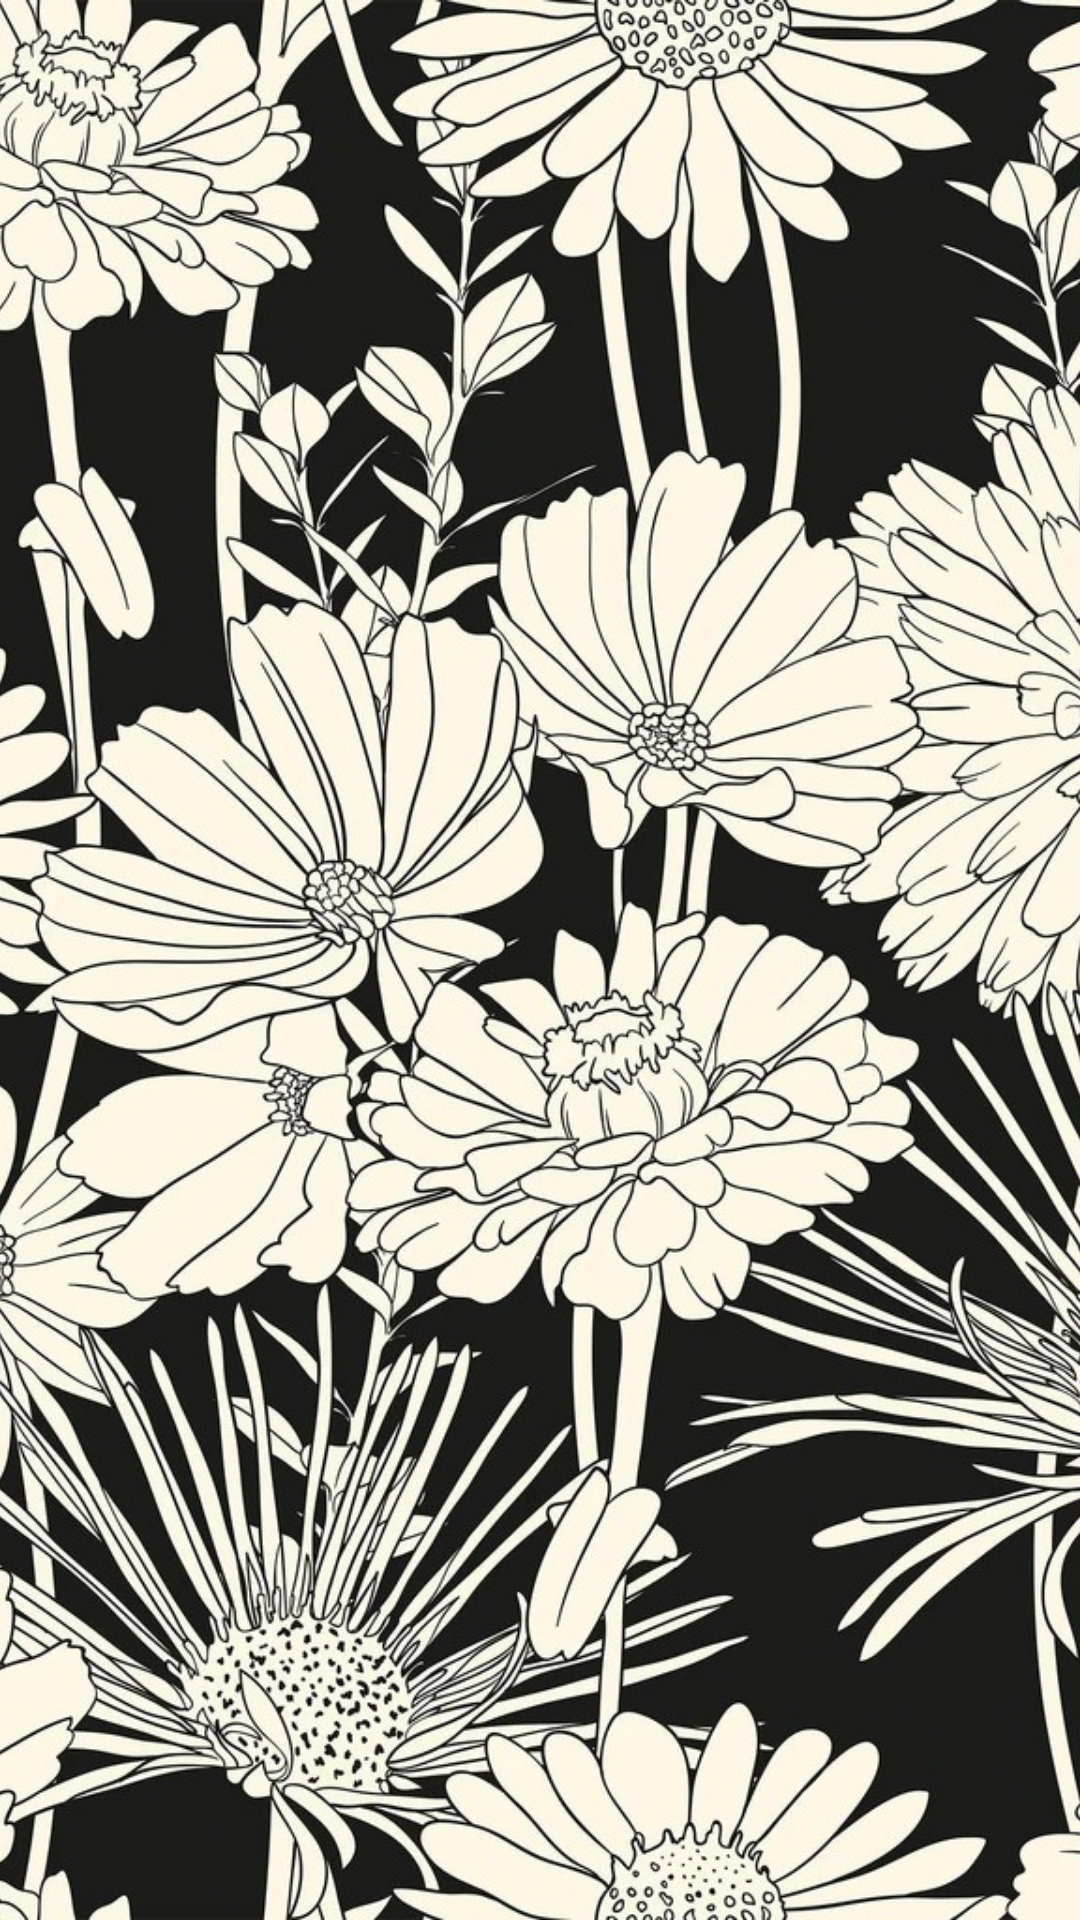 White And Black Hand Drawn Floral Peel And Stick Removable Wallpaper 5539 Folk Art Flowers Floral Drawing Flower Illustration